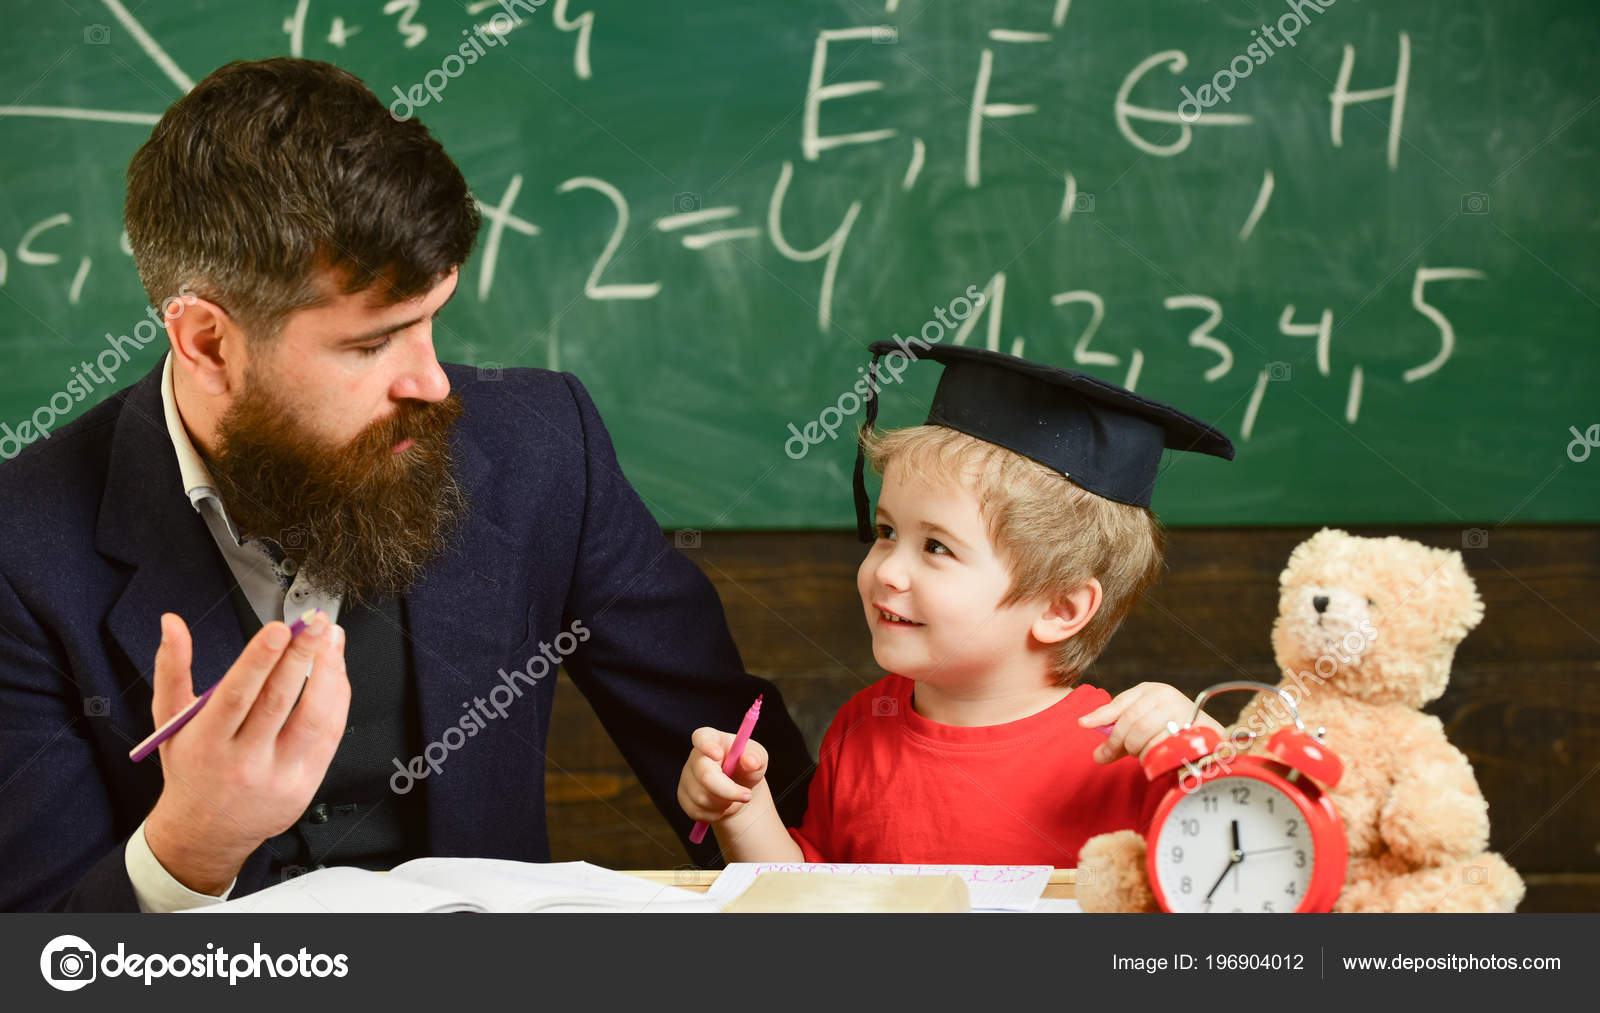 father and son lesson